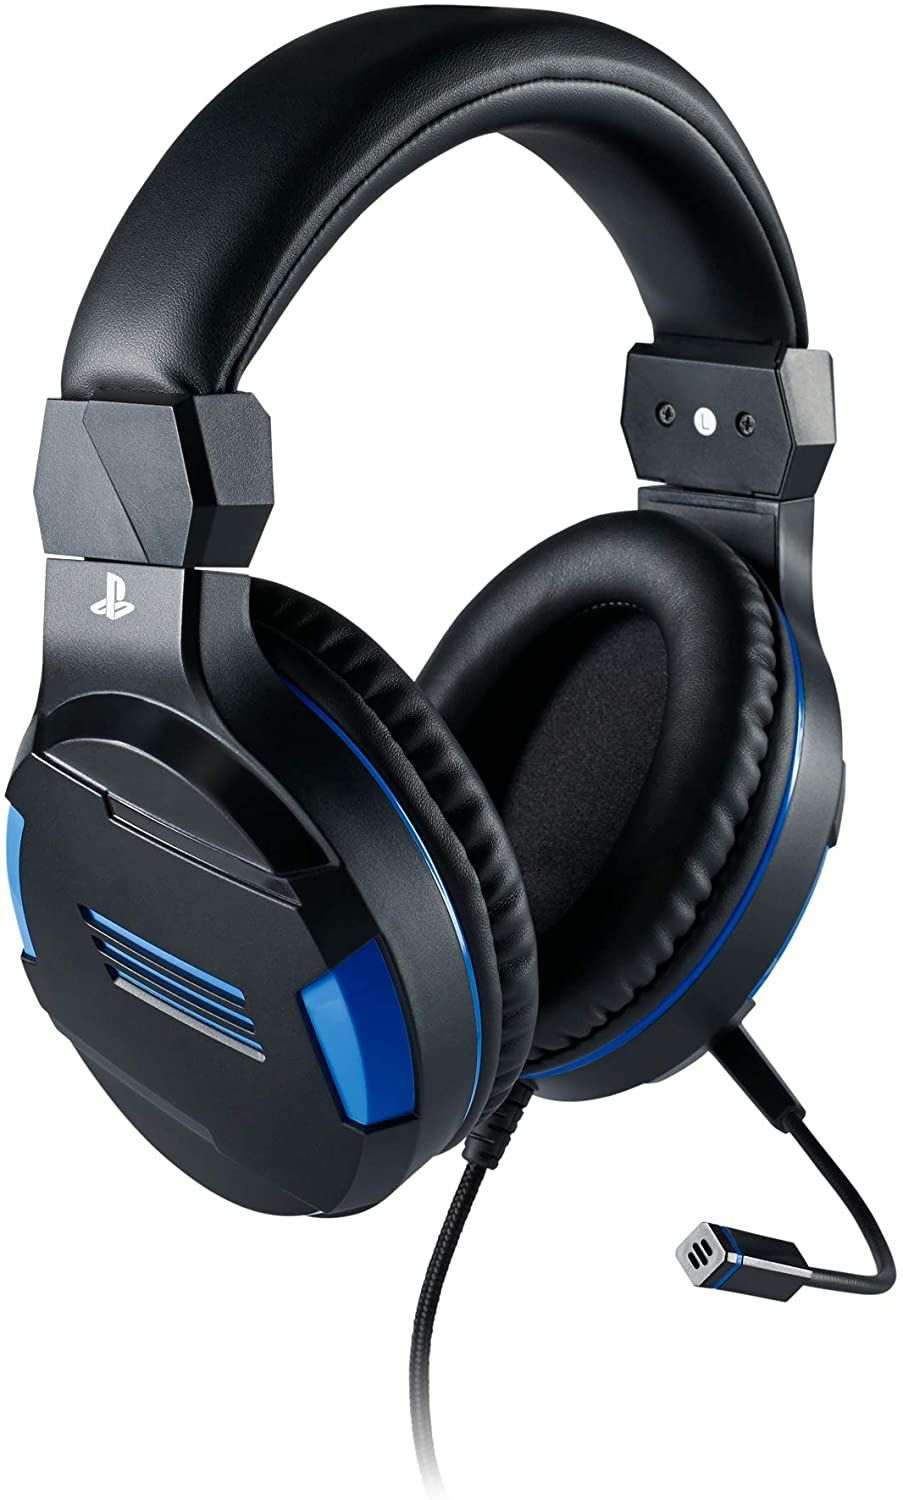 Big Ben Officially Licensed PlayStation 4 Stereo Headset V3 Wired - Titanium (PS4)